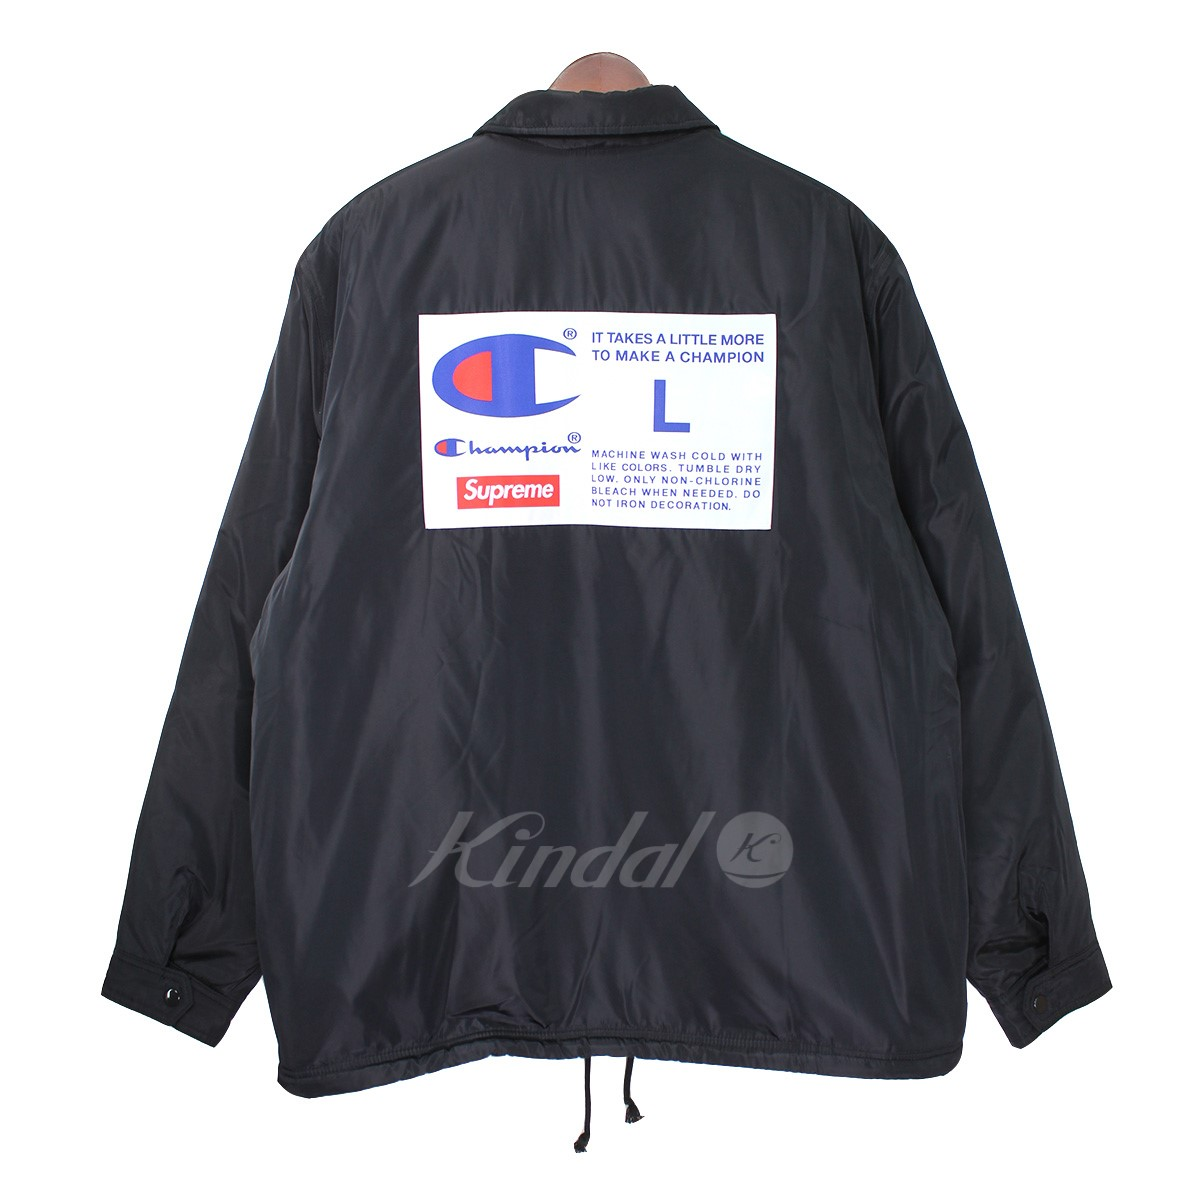 【中古】Supreme×Champion 18AW Champion Label Coaches Jacket バックロゴコーチジャケット 【送料無料】 【012828】 【KIND1641】